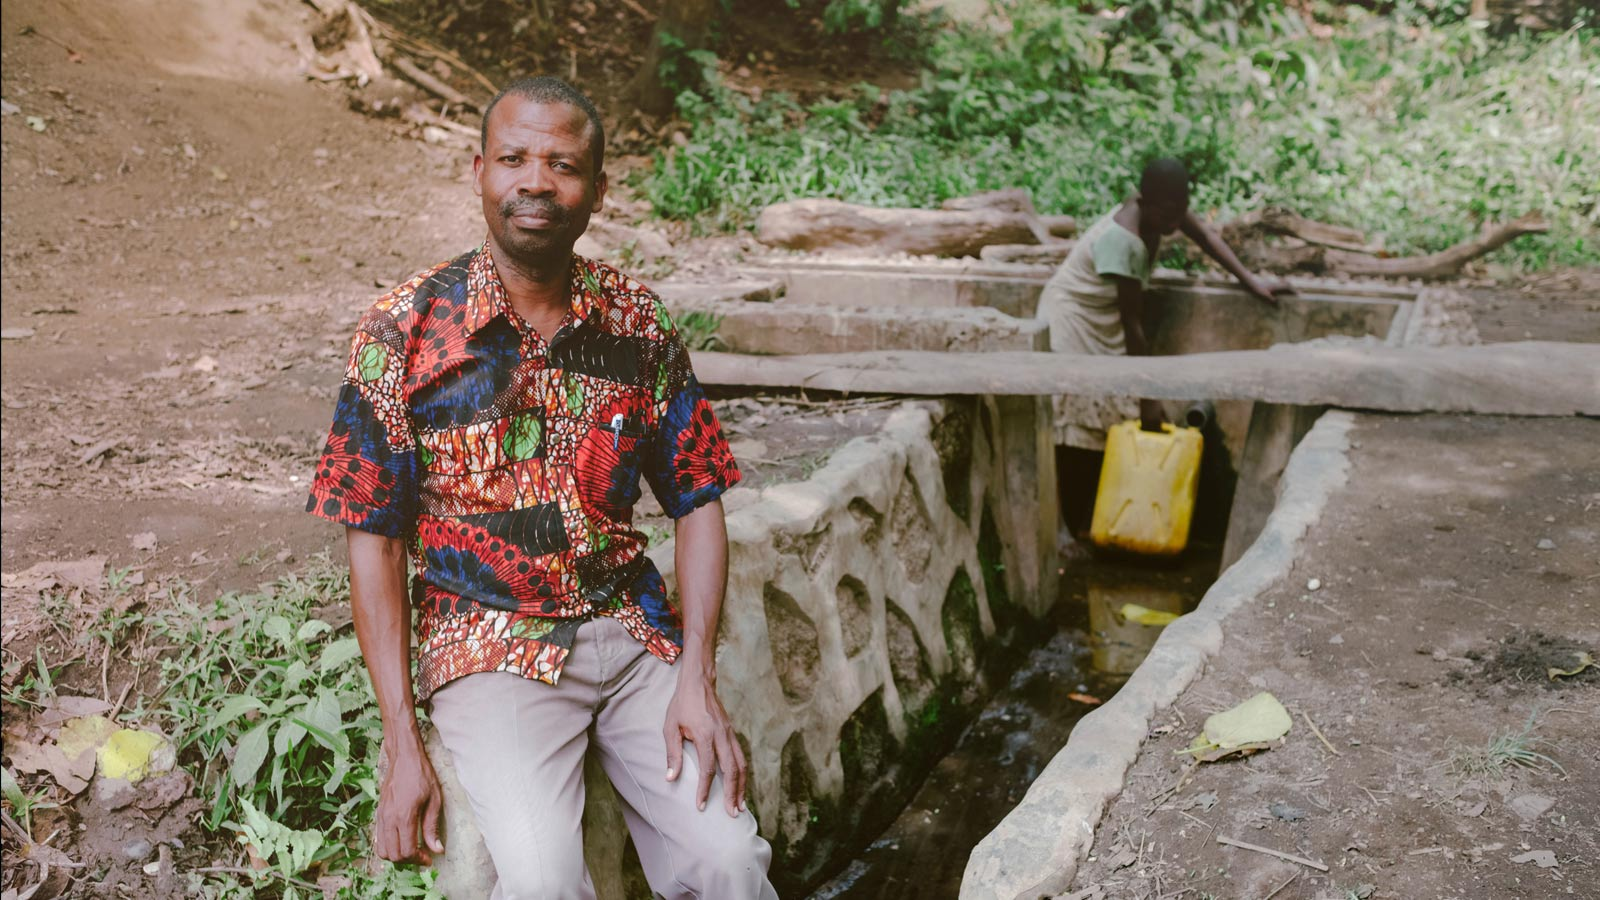 How trees provide clean water for farmers like Joram